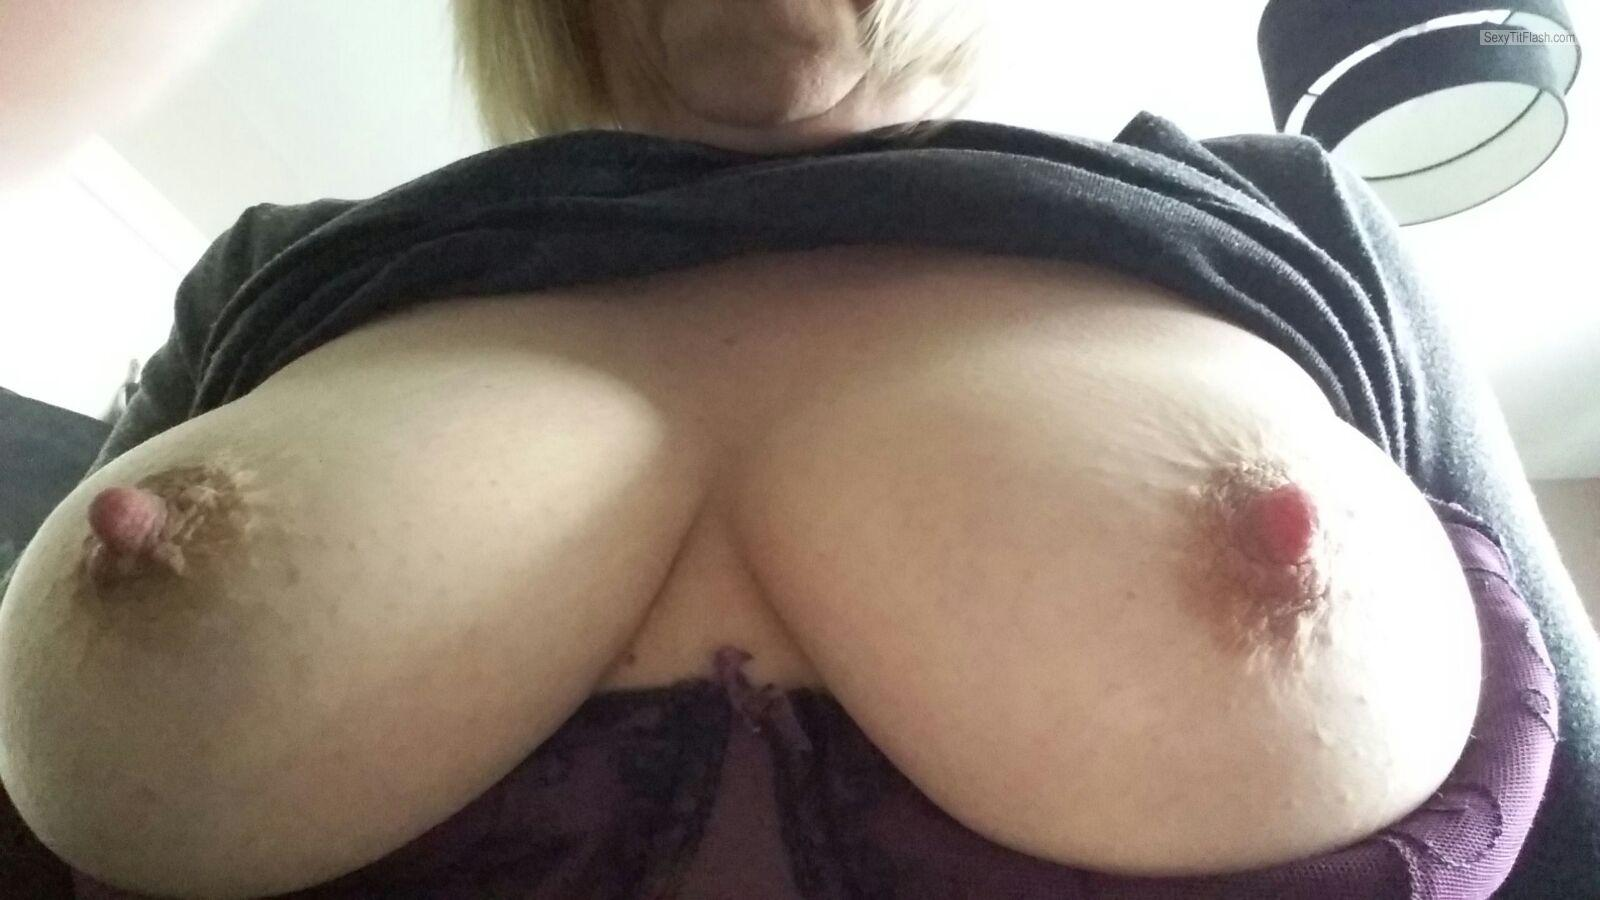 My Medium Tits Topless Selfie by Ellens Boobs, Late Forties M